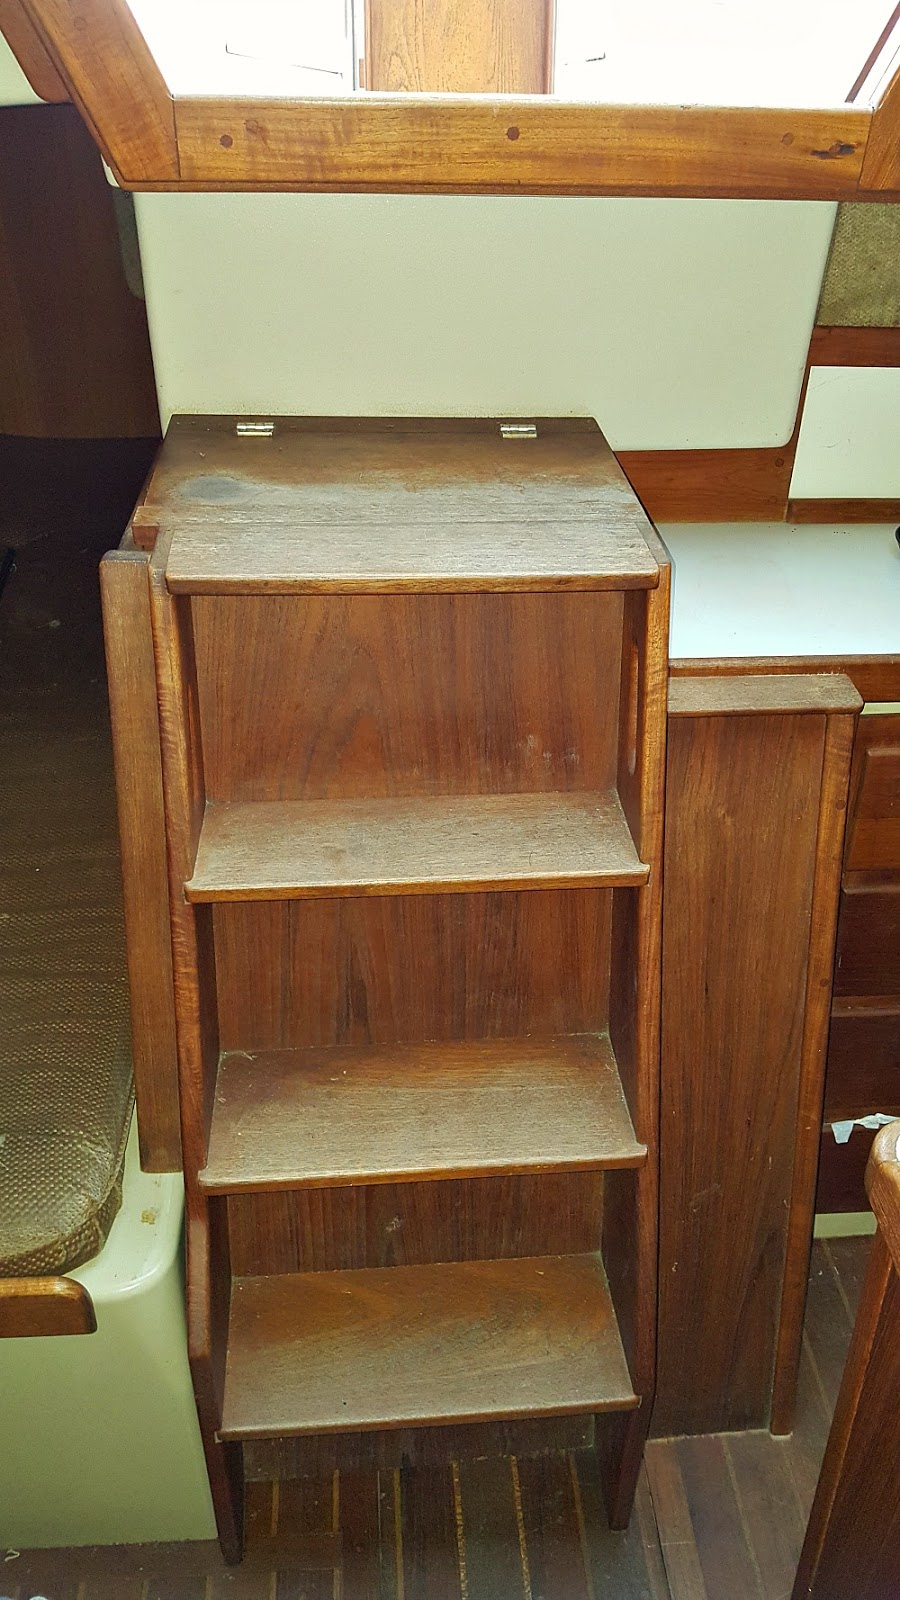 Sailboat Steps in Companionway